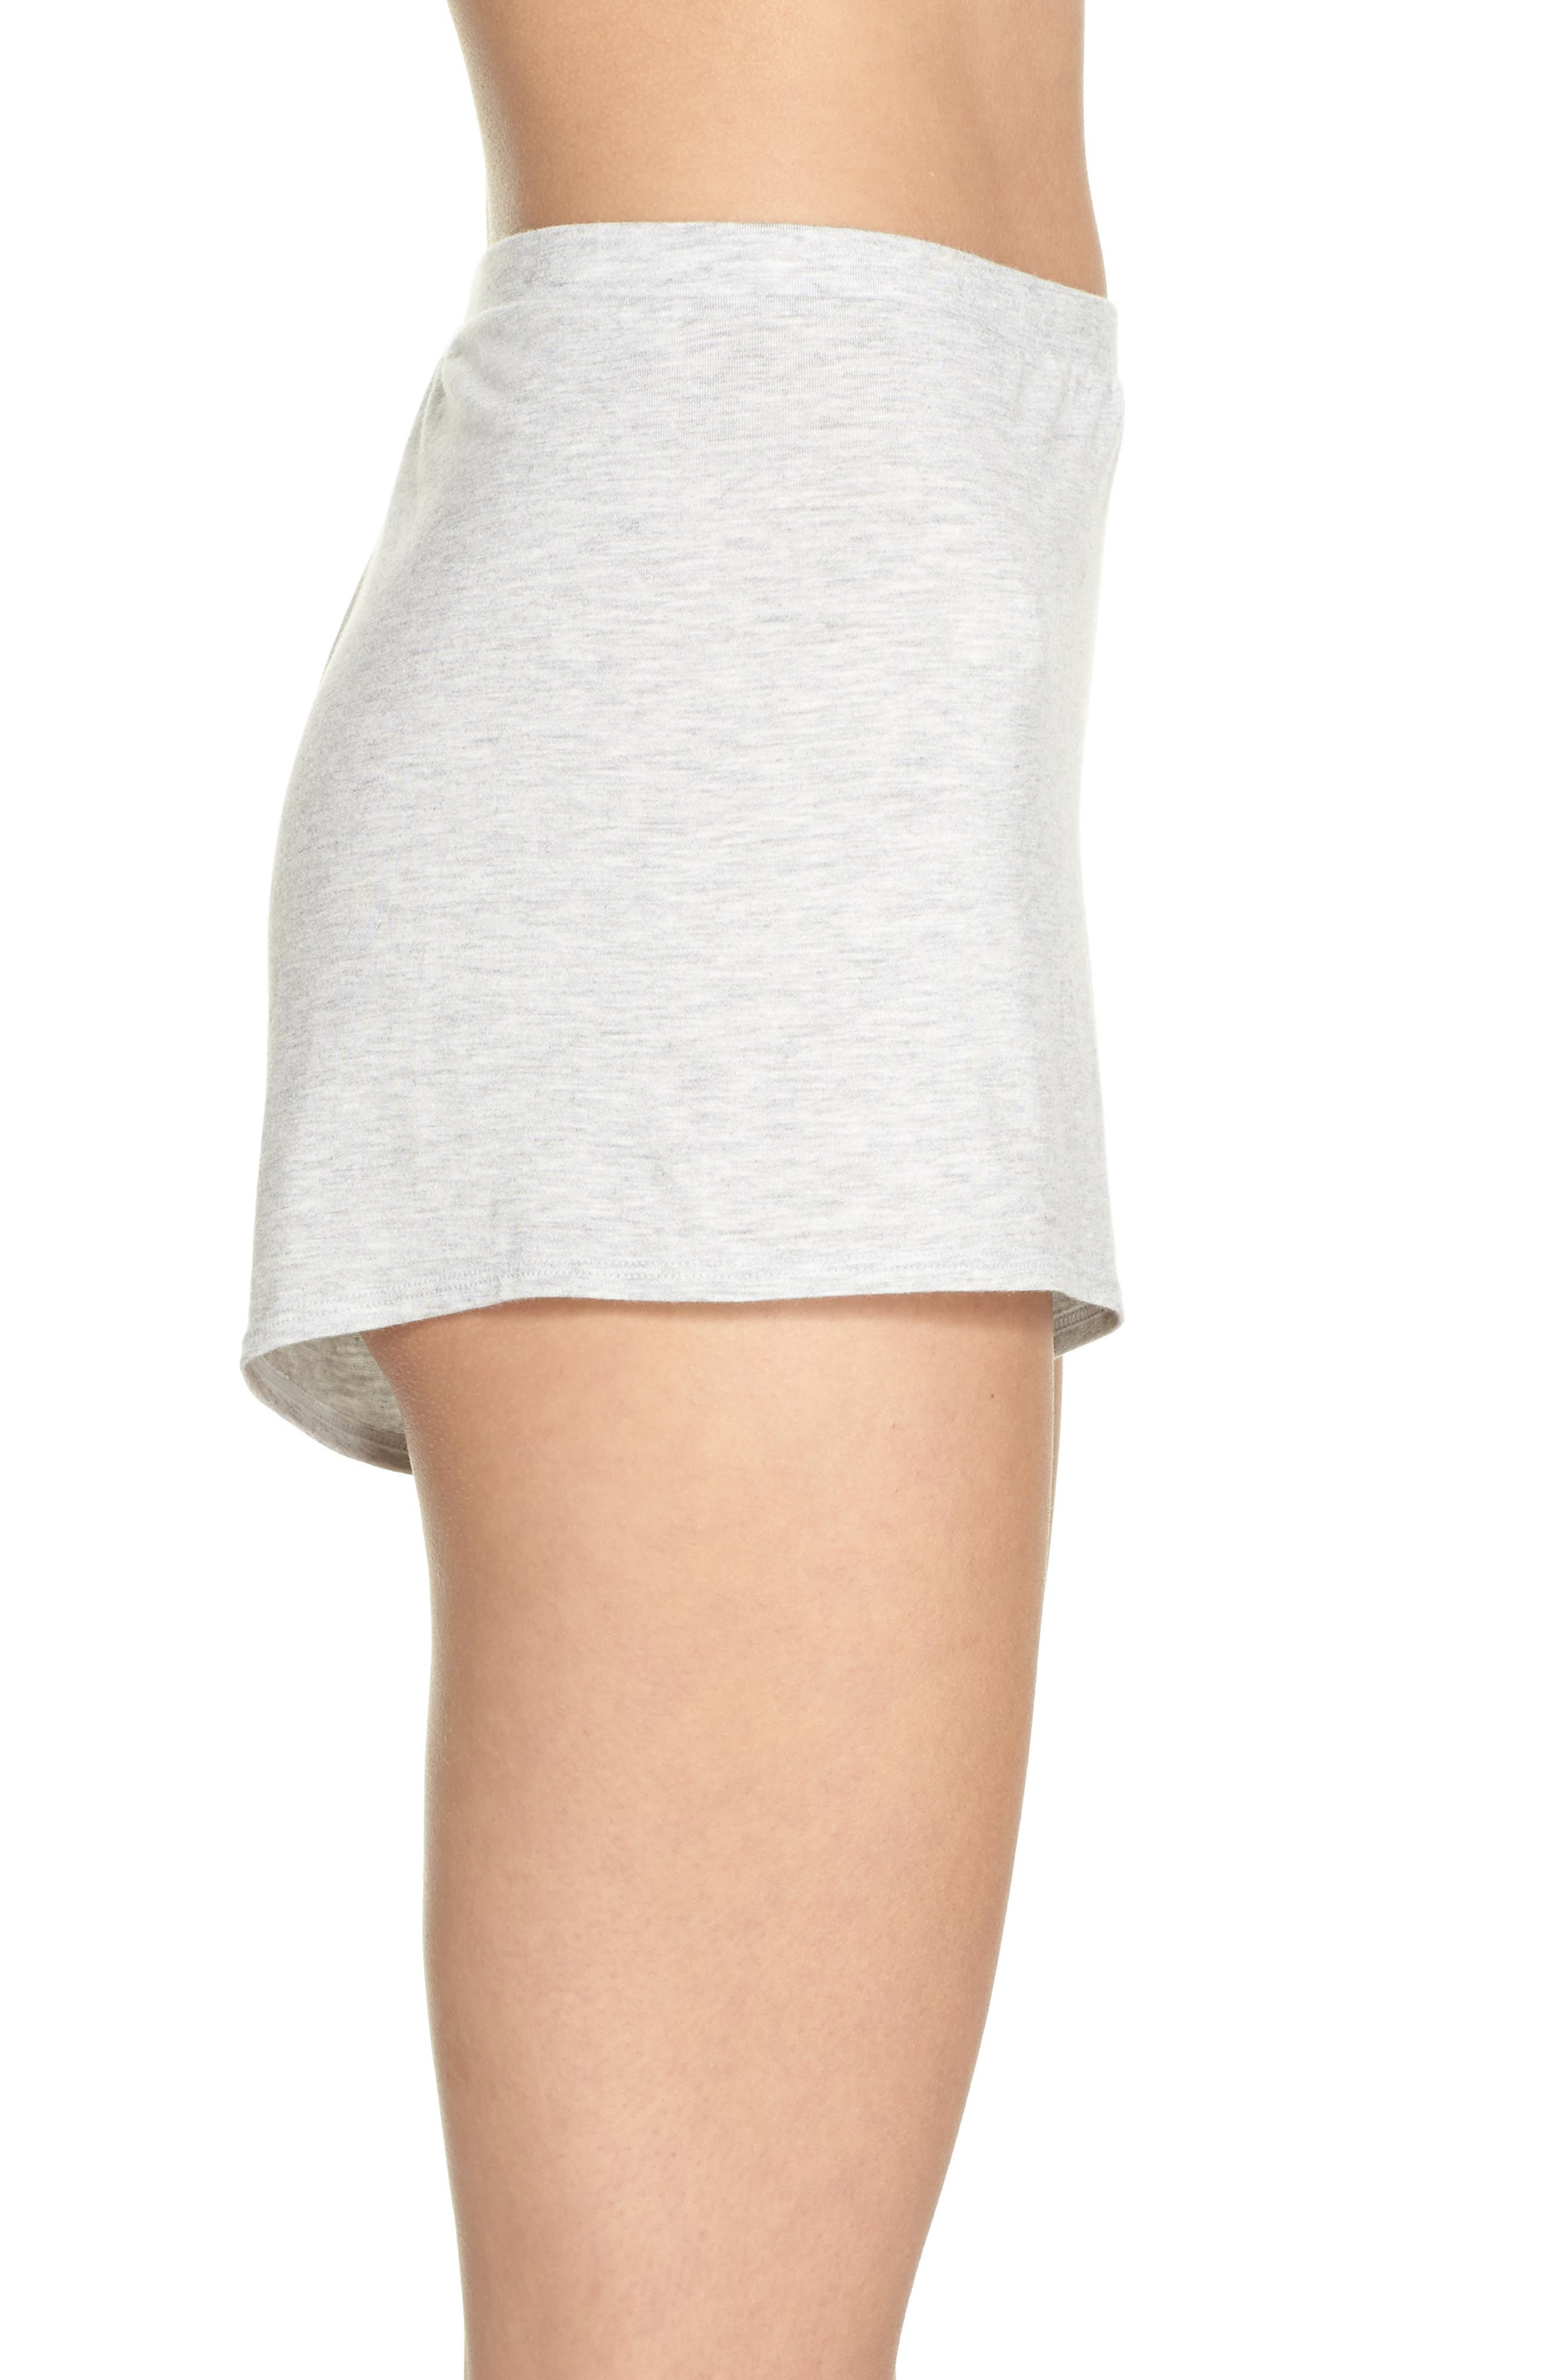 Undressed Pajama Shorts,                             Alternate thumbnail 3, color,                             Silver